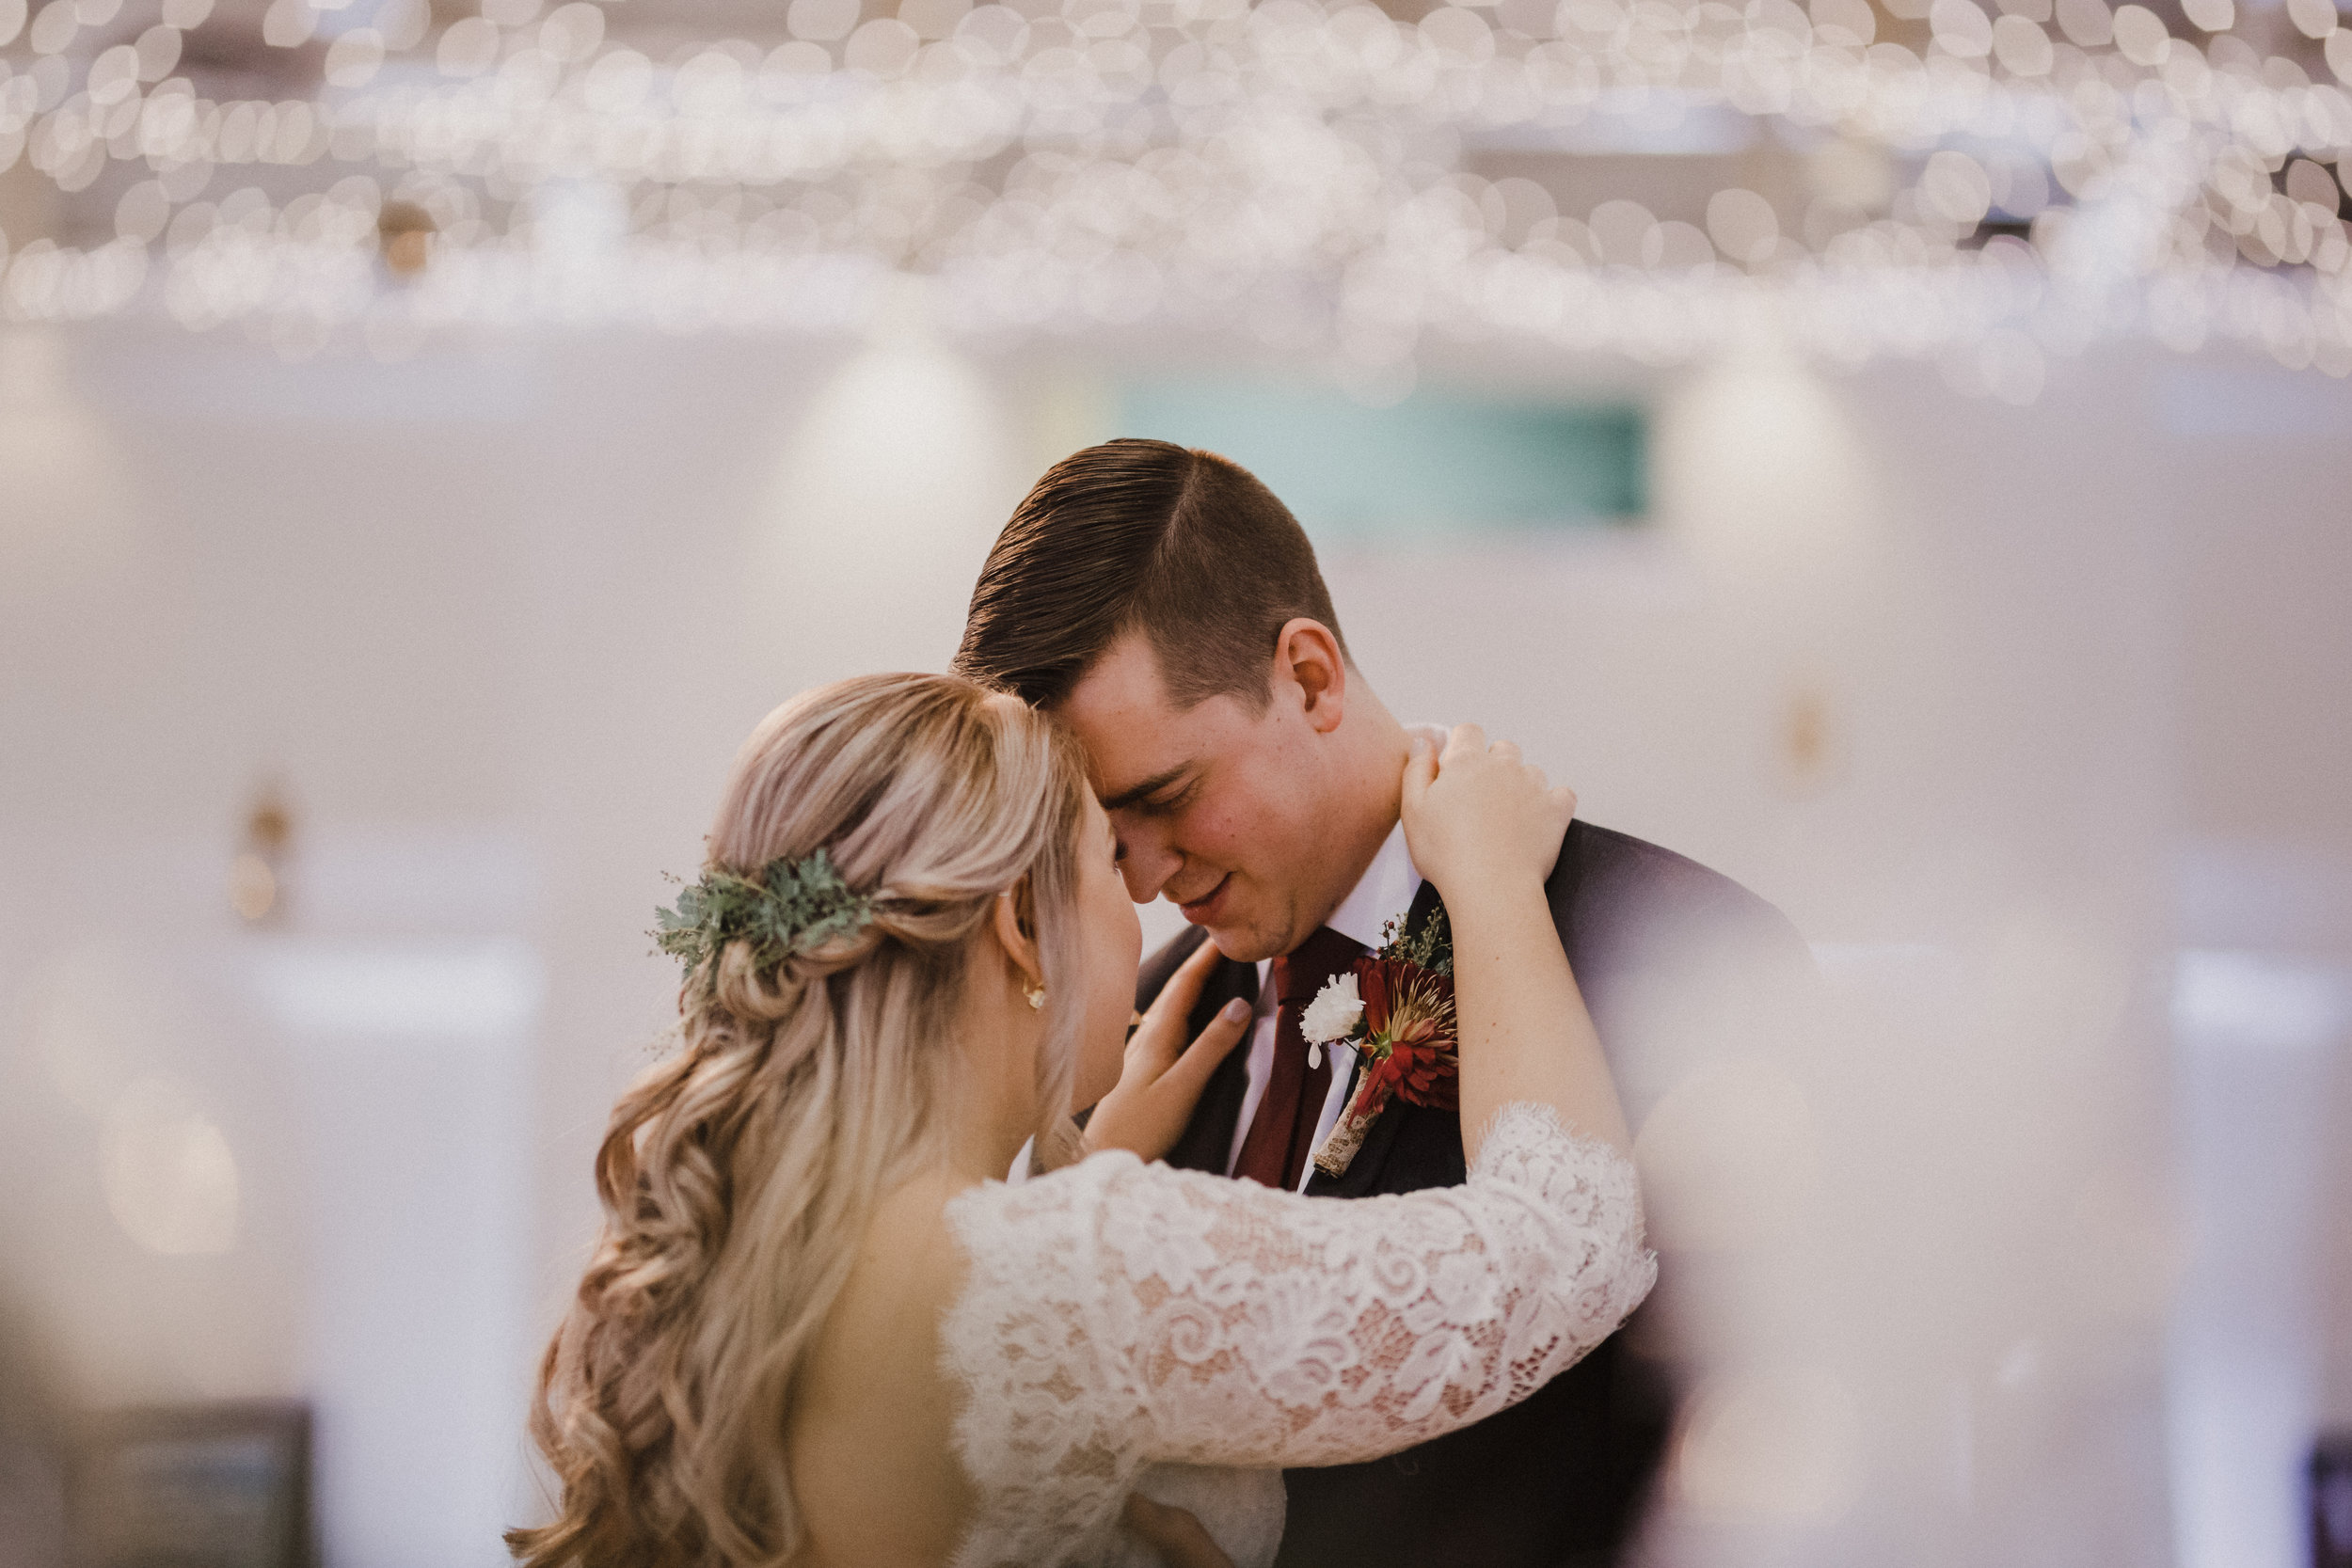 Looking for the right person to capture your special day with the right price? - Feel free to check out the different rates and packages.